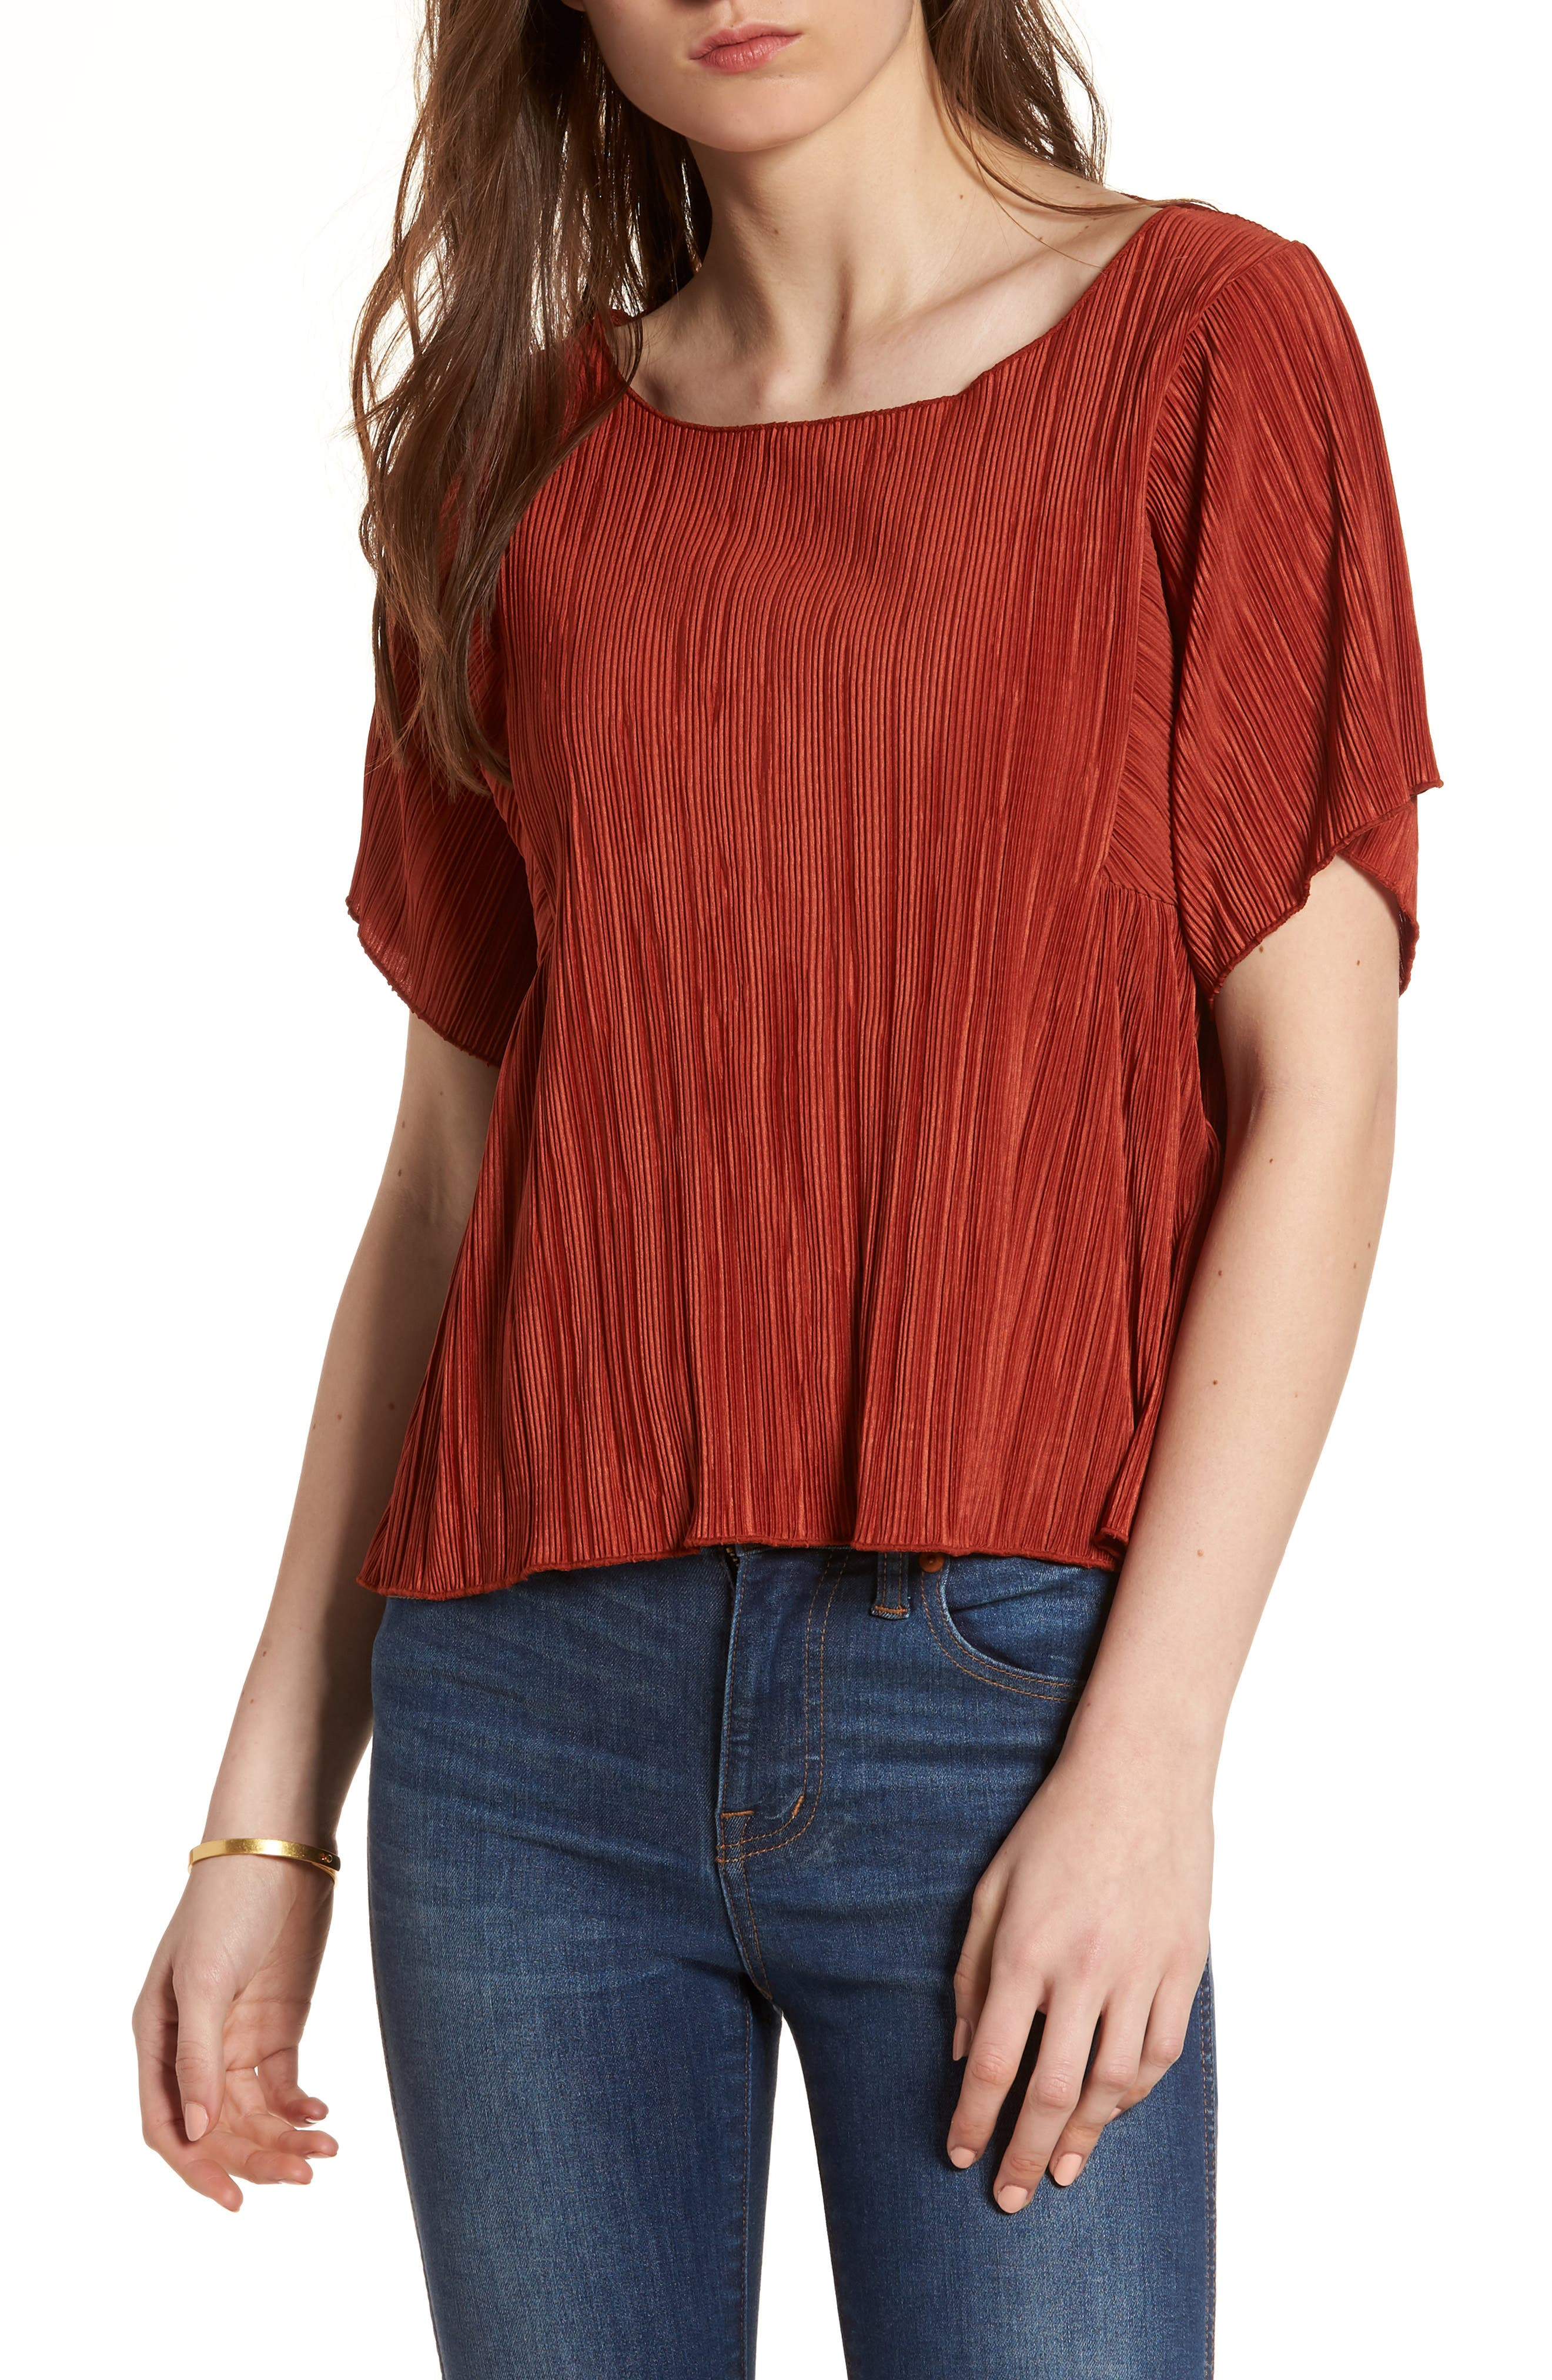 Micropleat Top,                             Main thumbnail 1, color,                             Rusty Torch